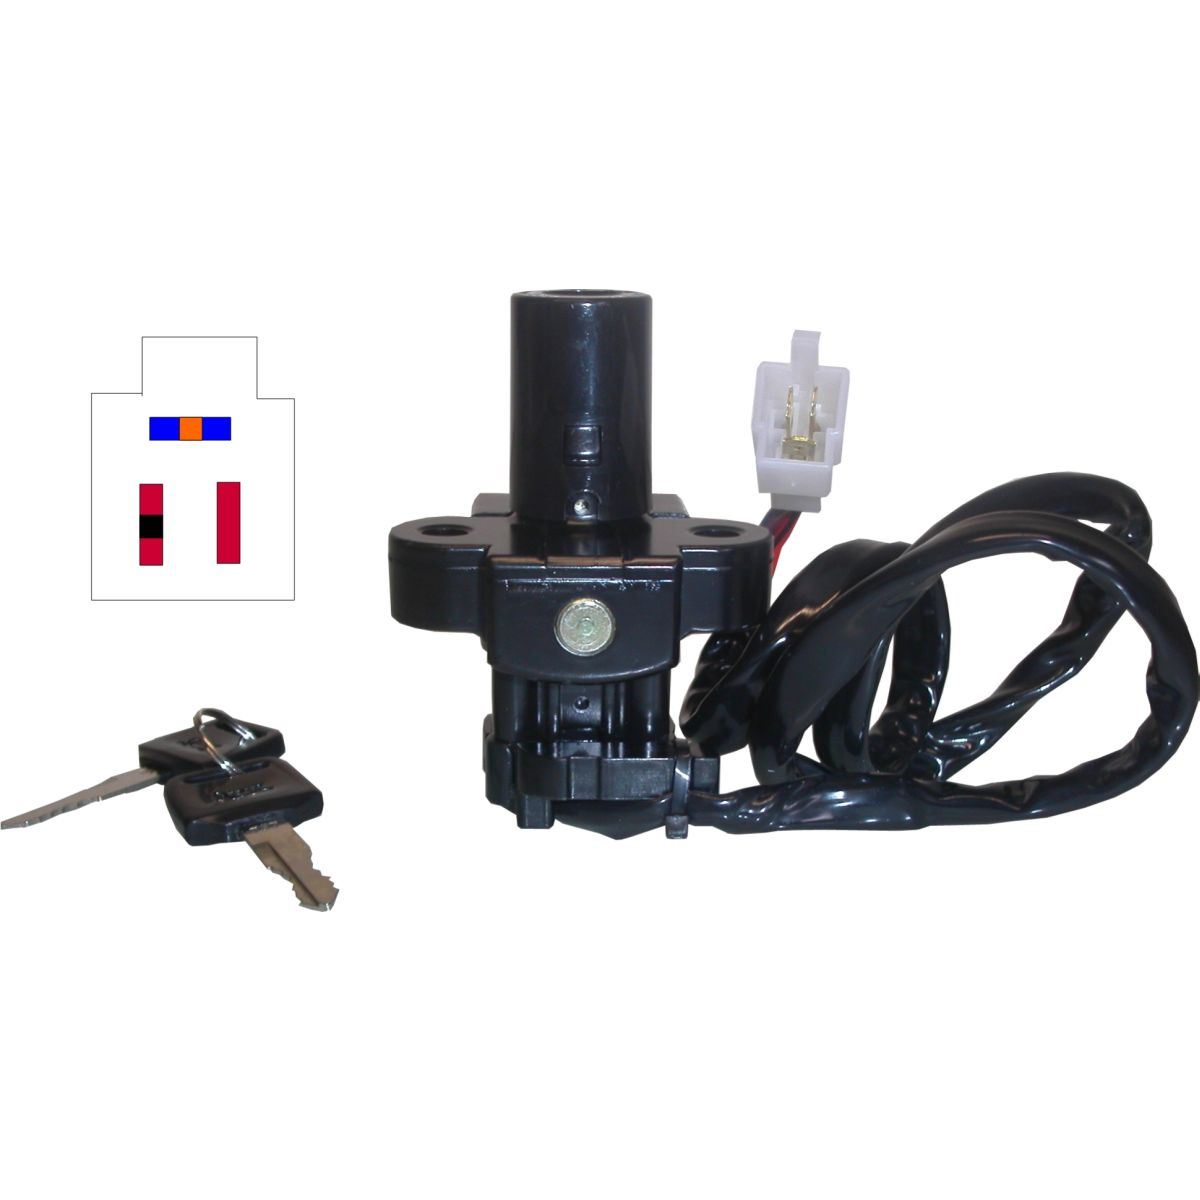 Aw Motorcycle Parts  Ignition Switch Honda Cbr600f  Vfr800